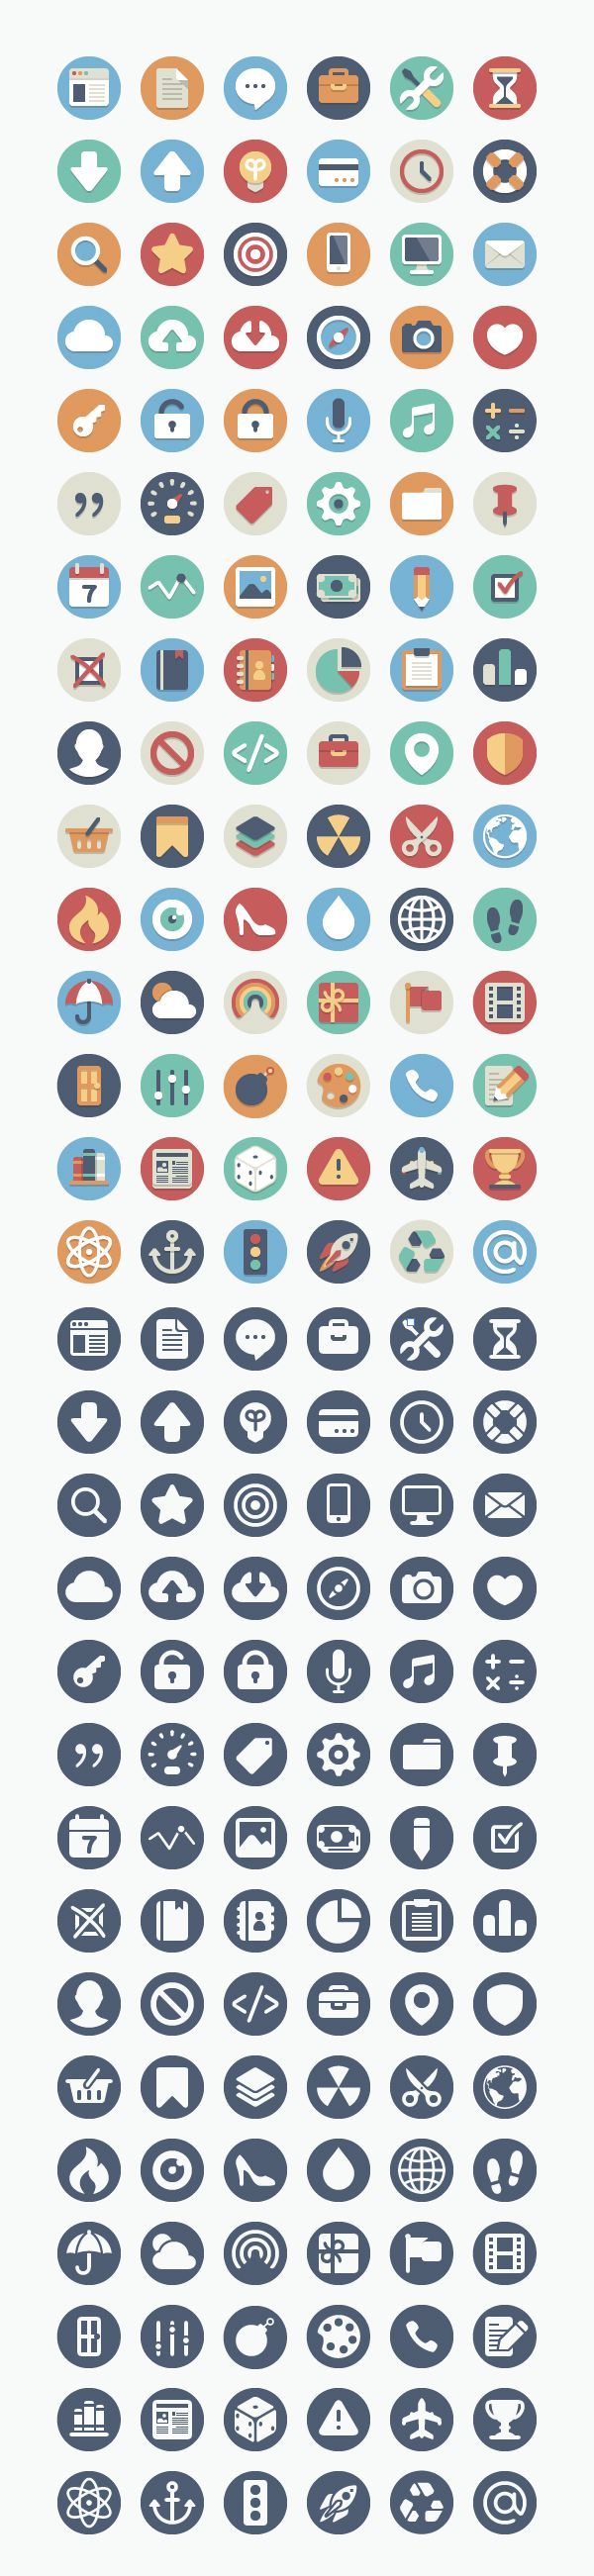 free-flat-icons >> http://www.elegantthemes.com/blog/freebie-of-the-week/beautiful-flat-icons-for-free